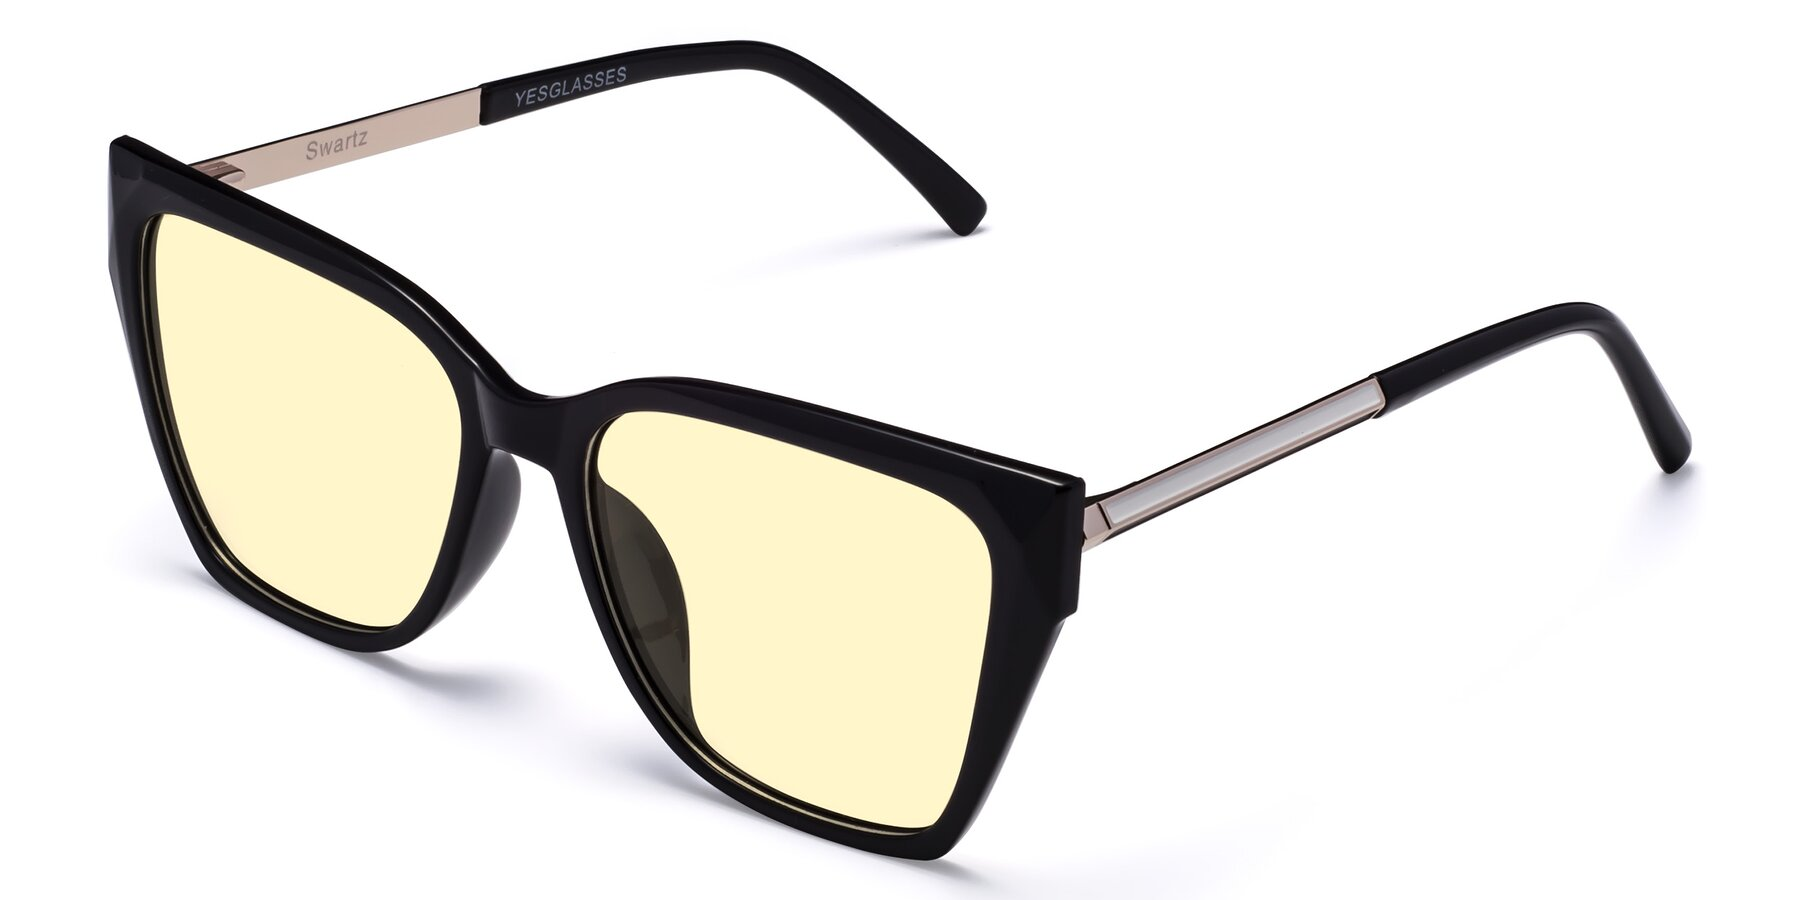 Angle of Swartz in Black with Light Yellow Tinted Lenses